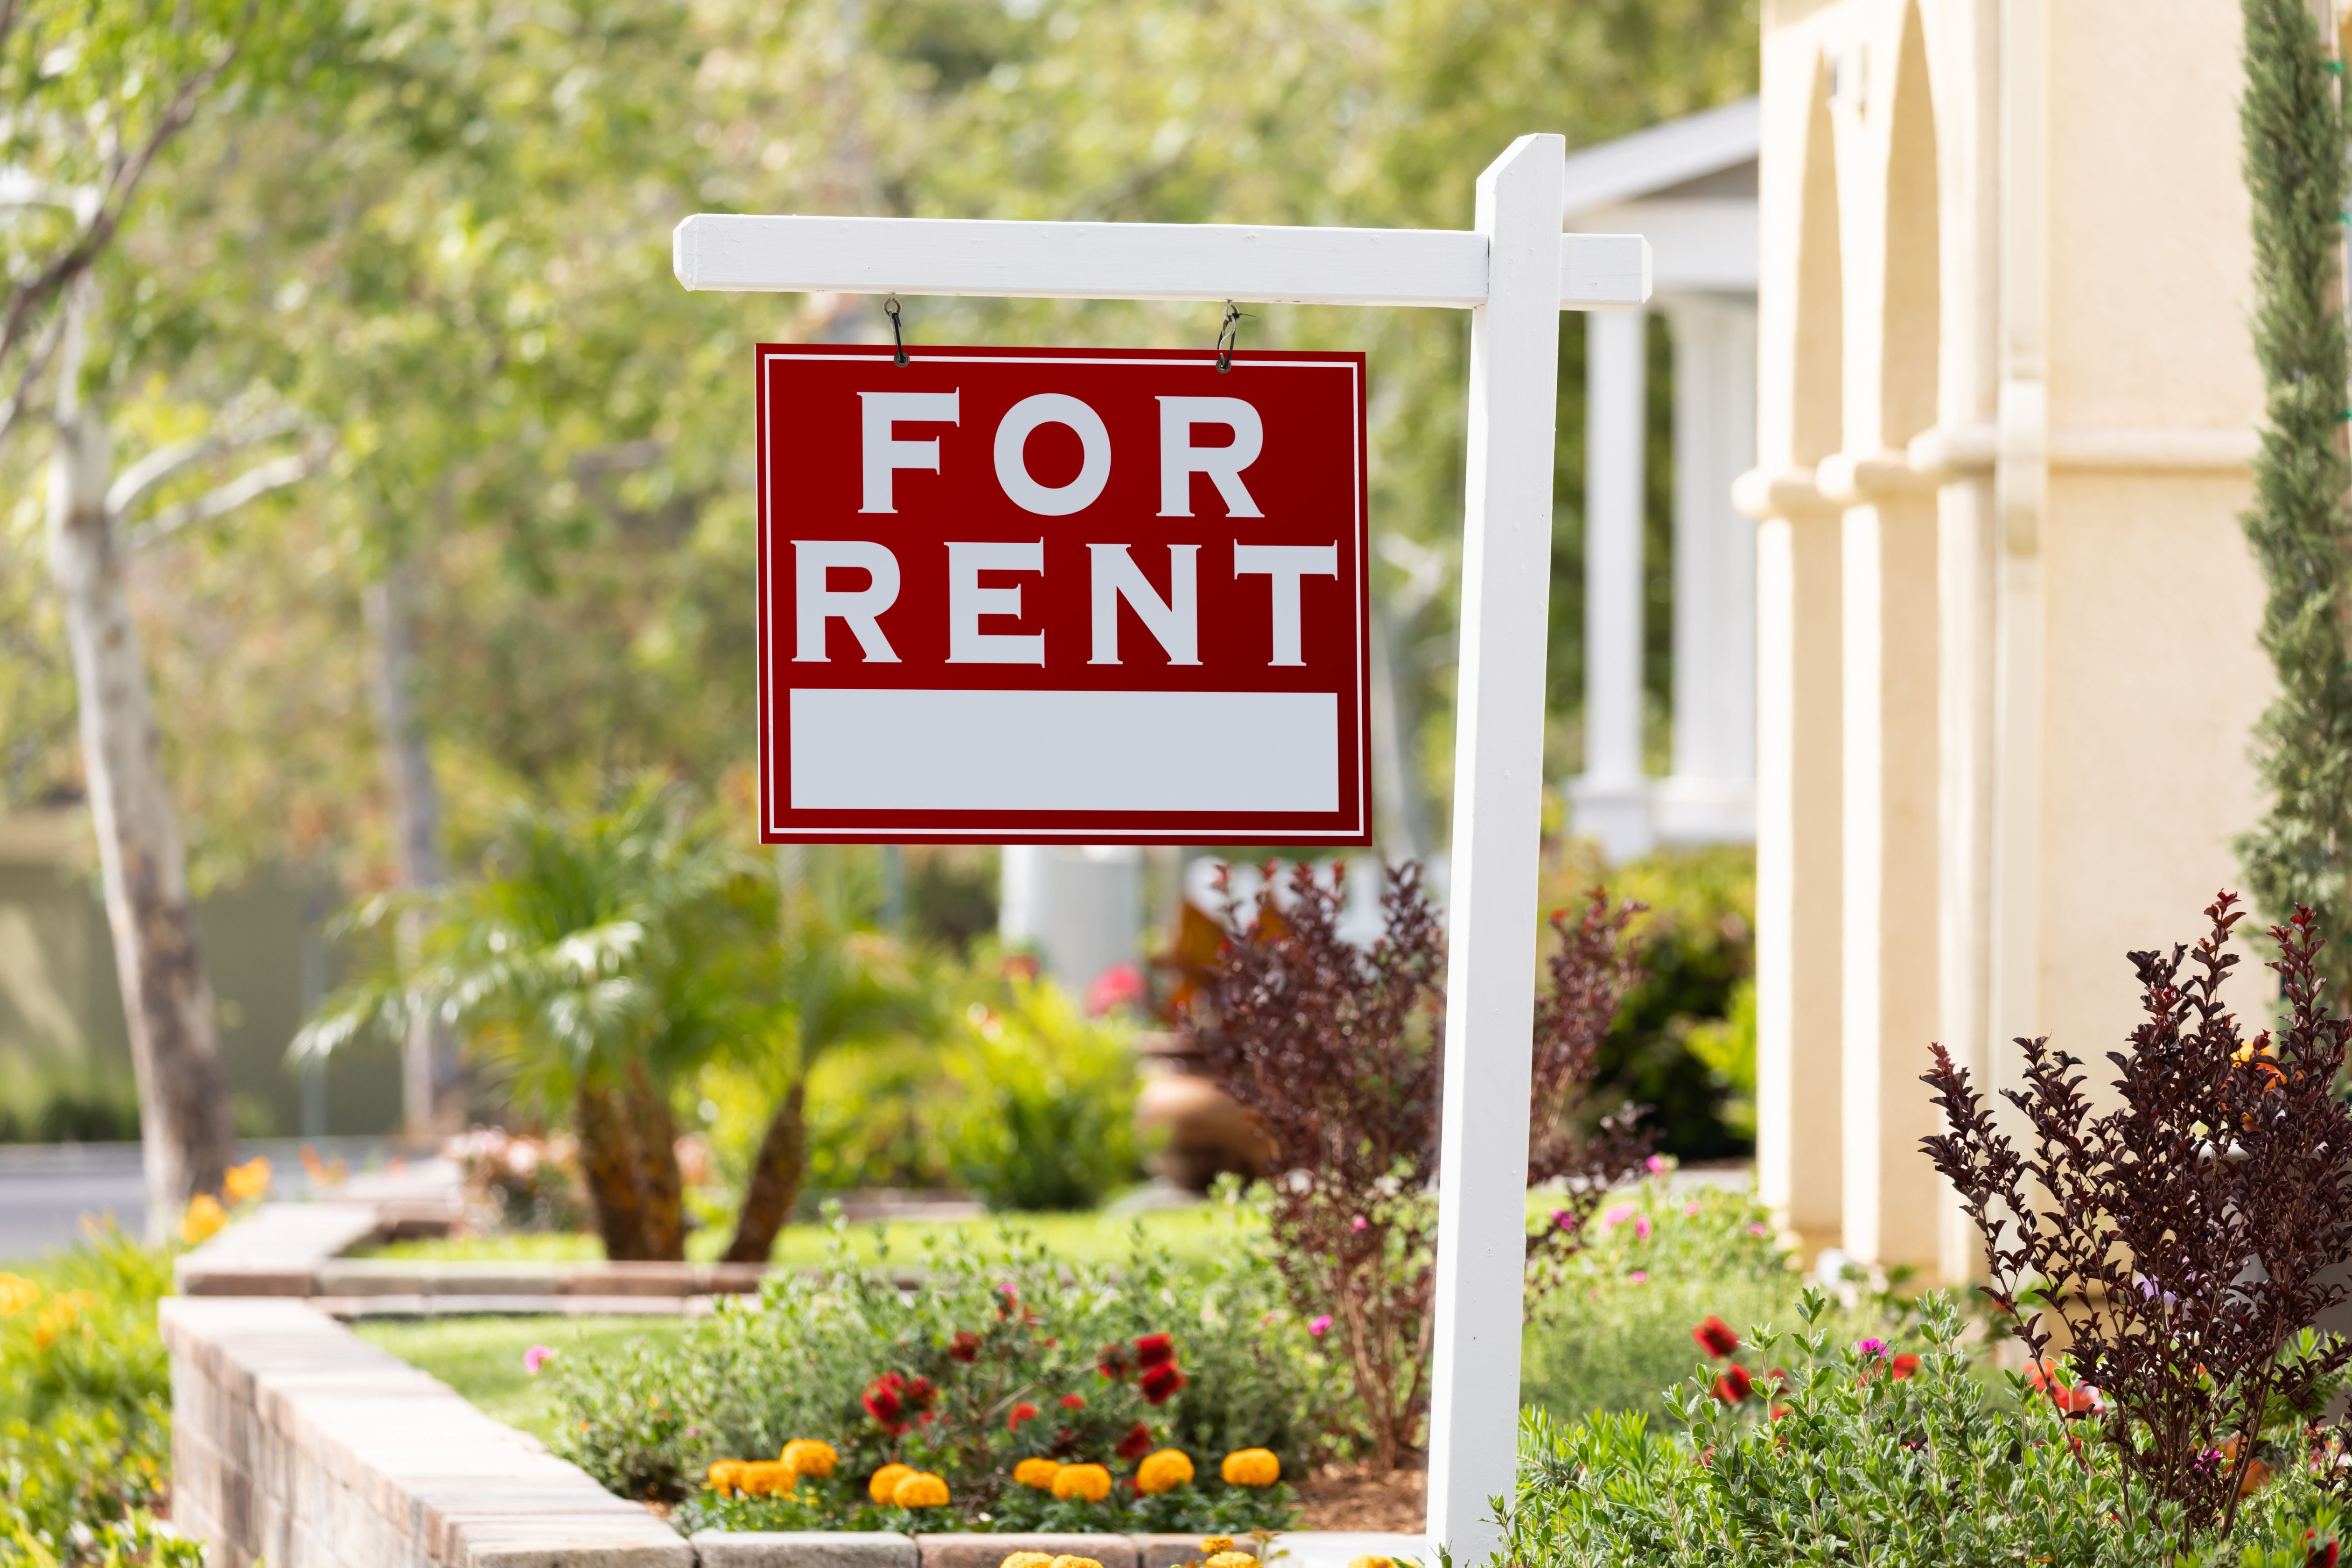 Melbourne vacant rentals more than double since pandemic began